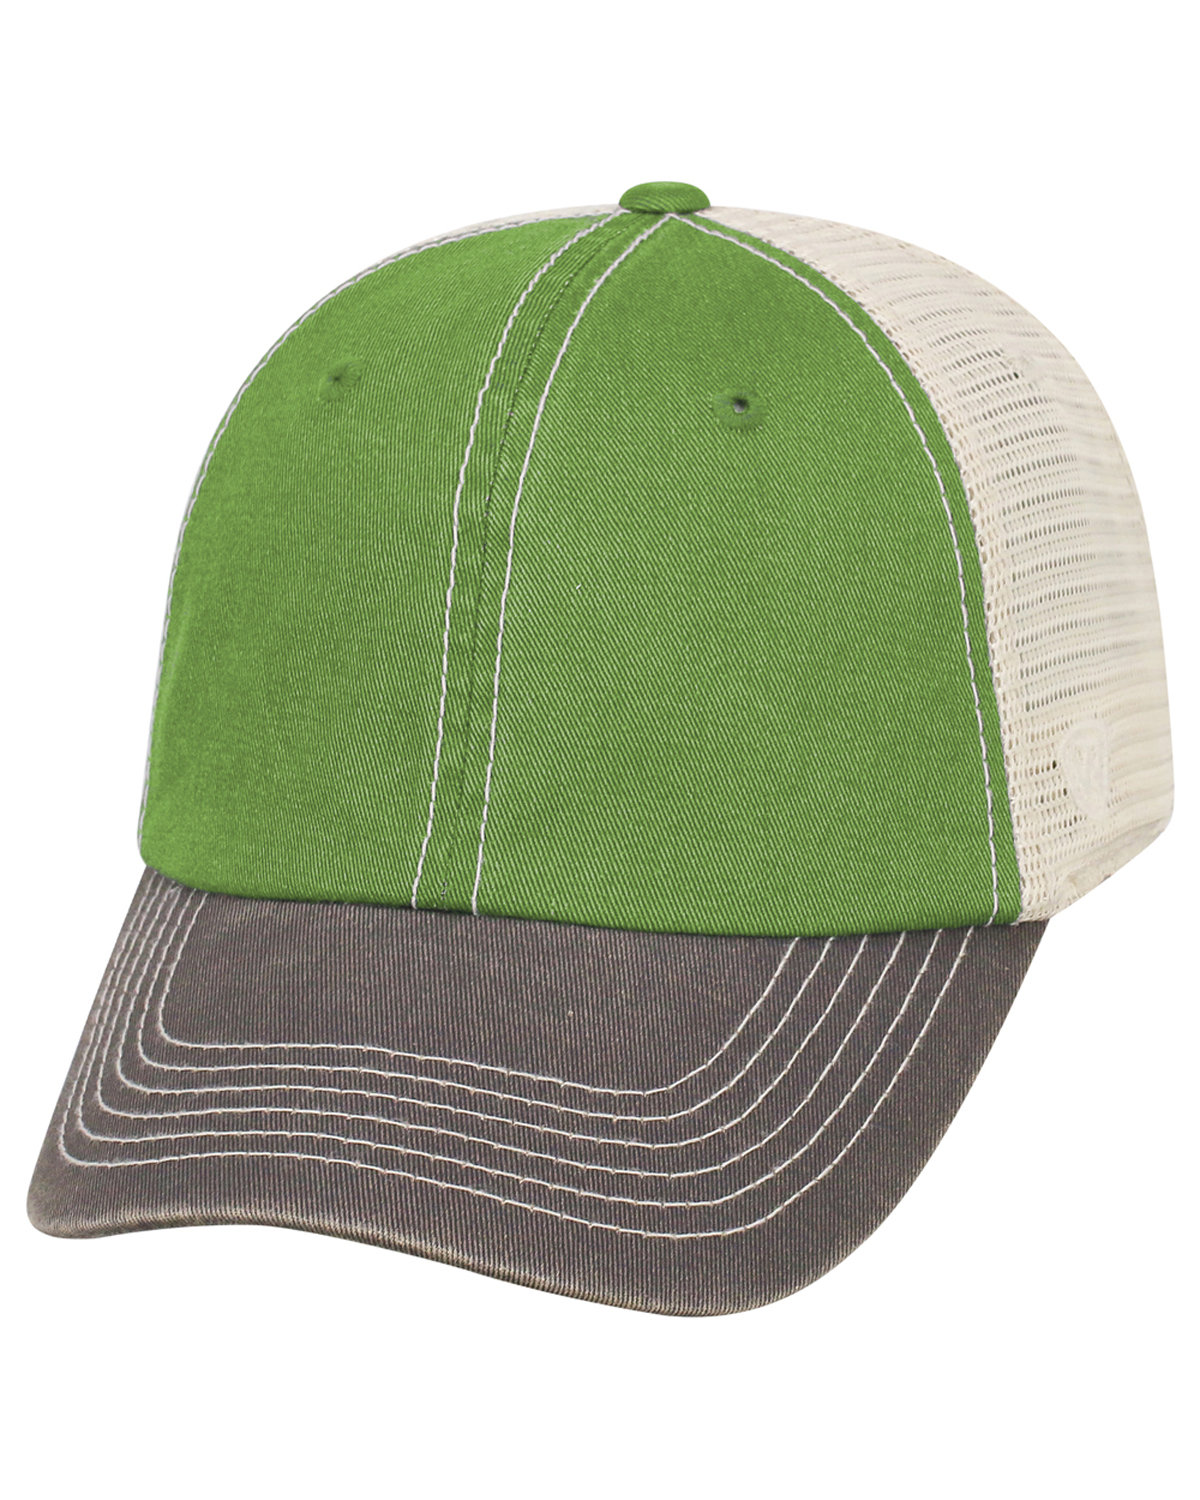 Top Of The World Adult Offroad Cap PISTACHIO